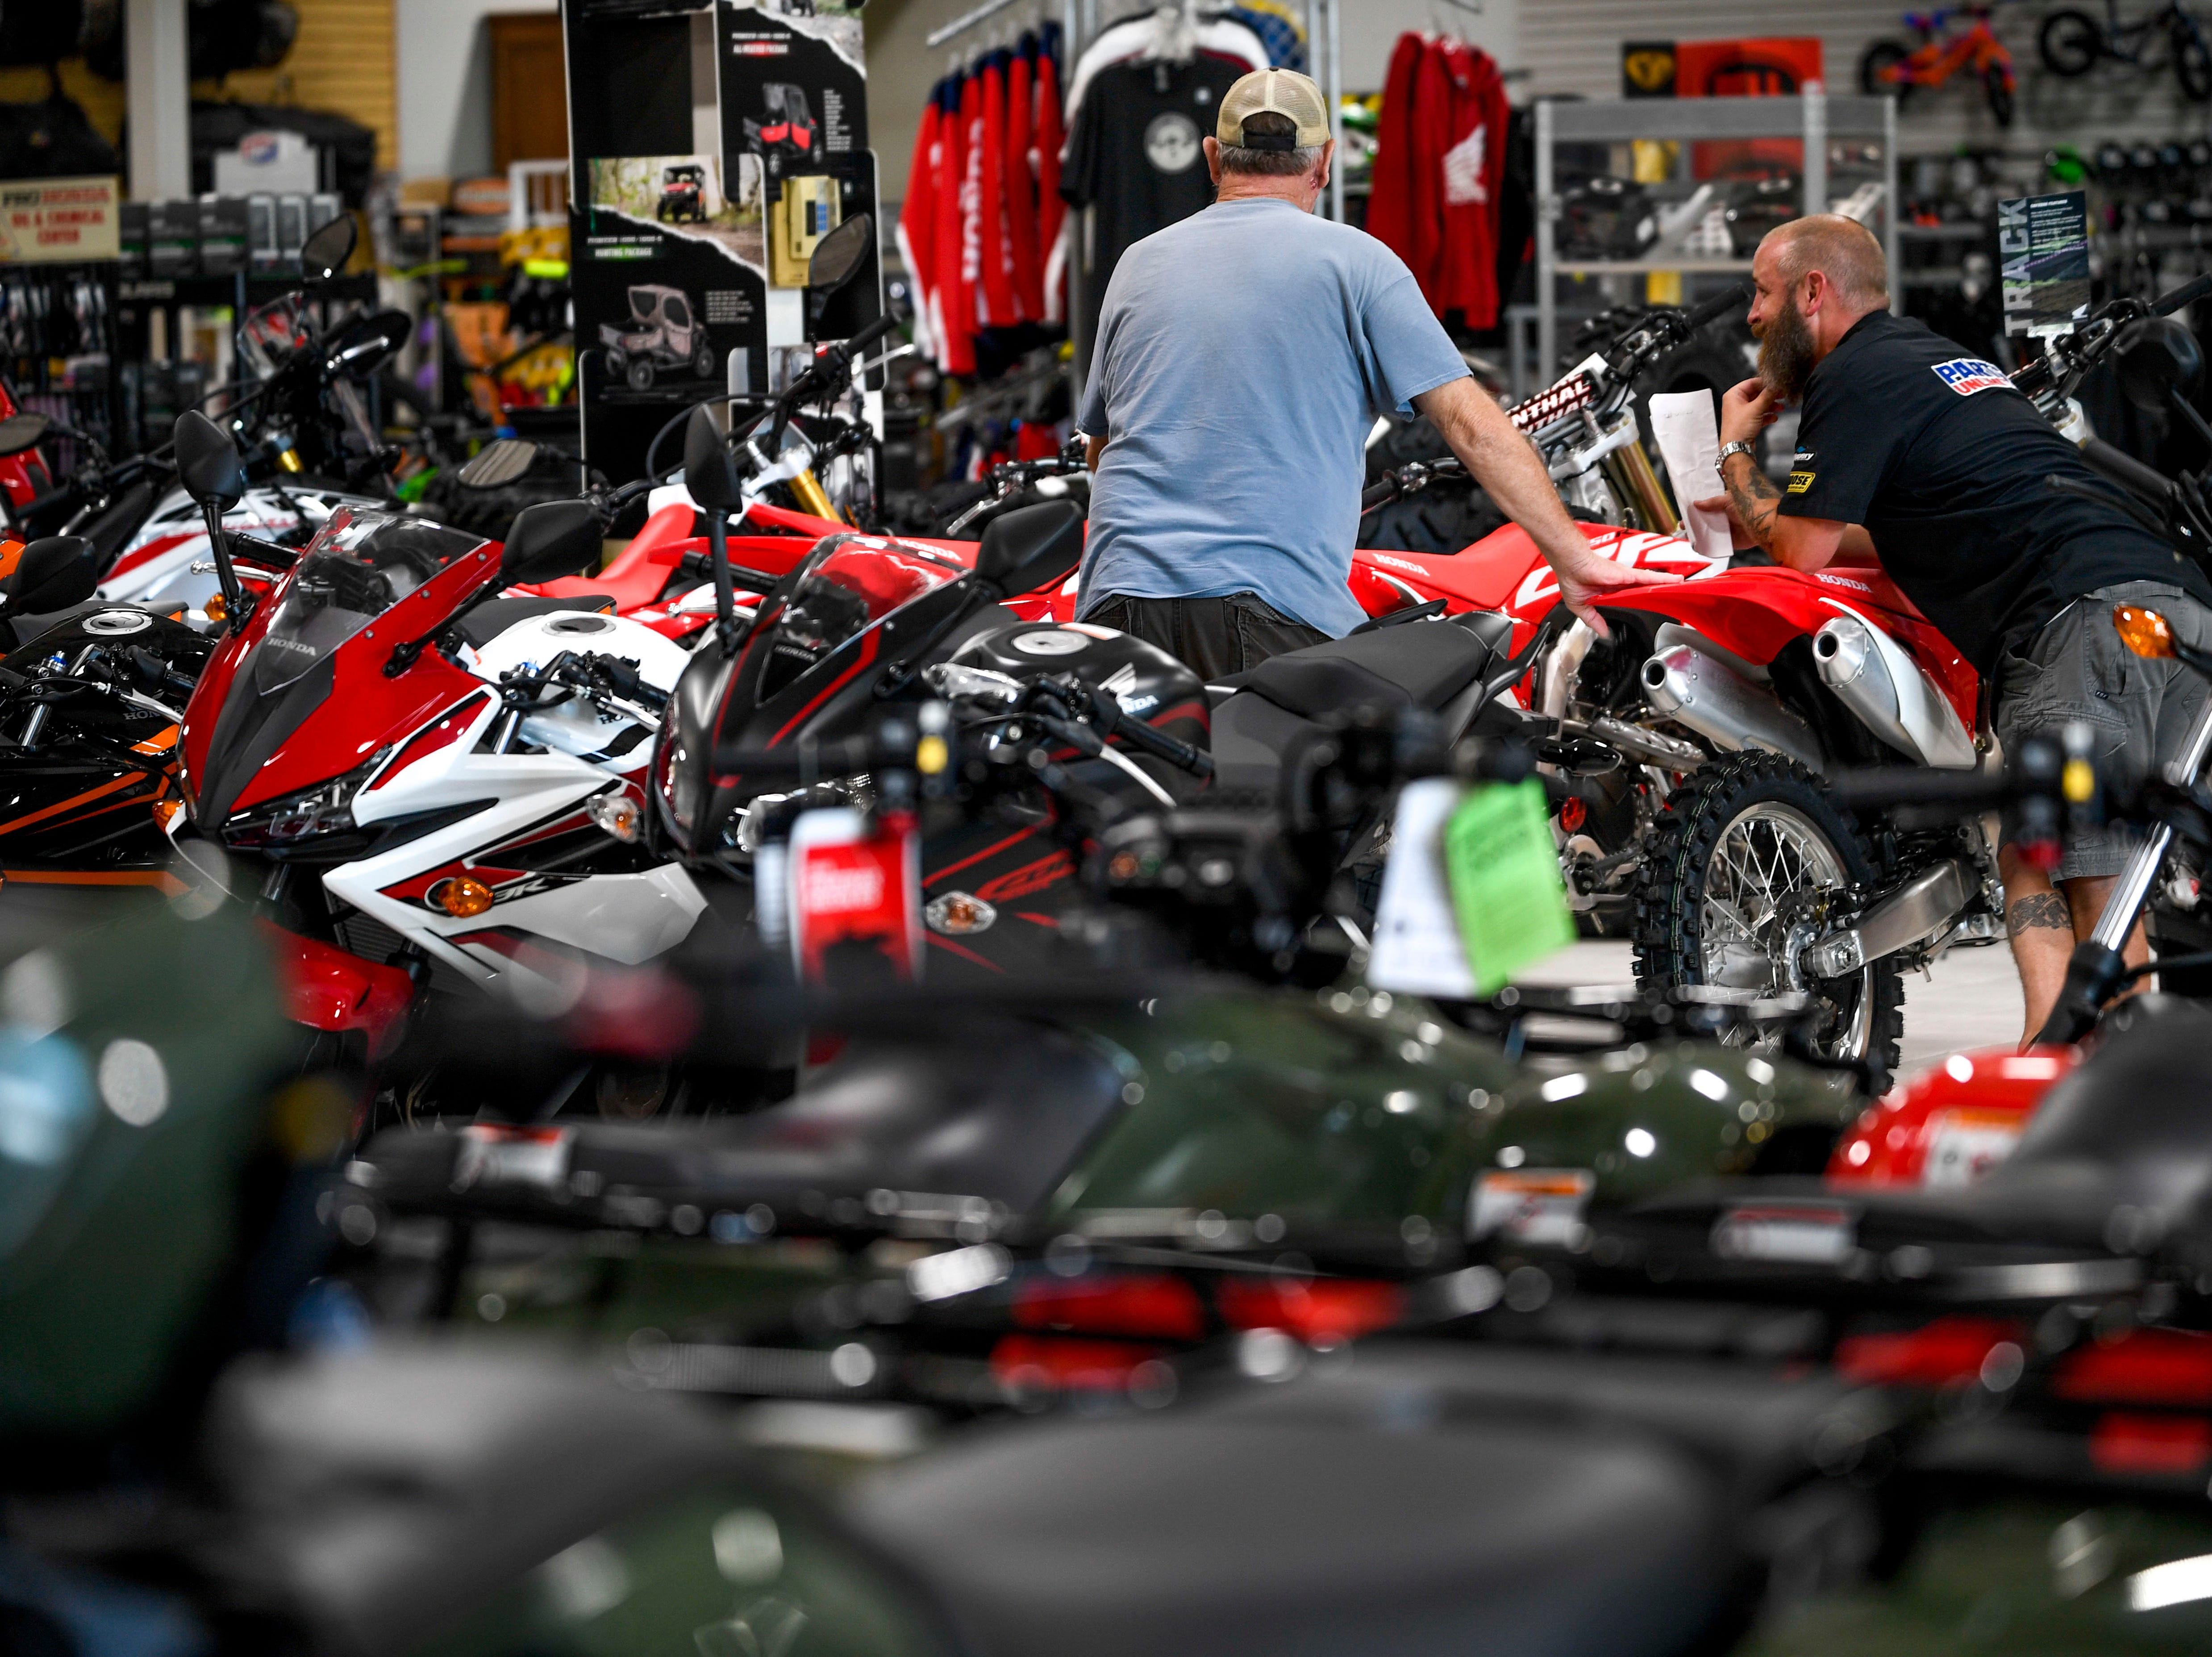 Customers look over ATVs at Bob's House of Honda in Jackson, Tenn., on Thursday, Sept. 20, 2018.